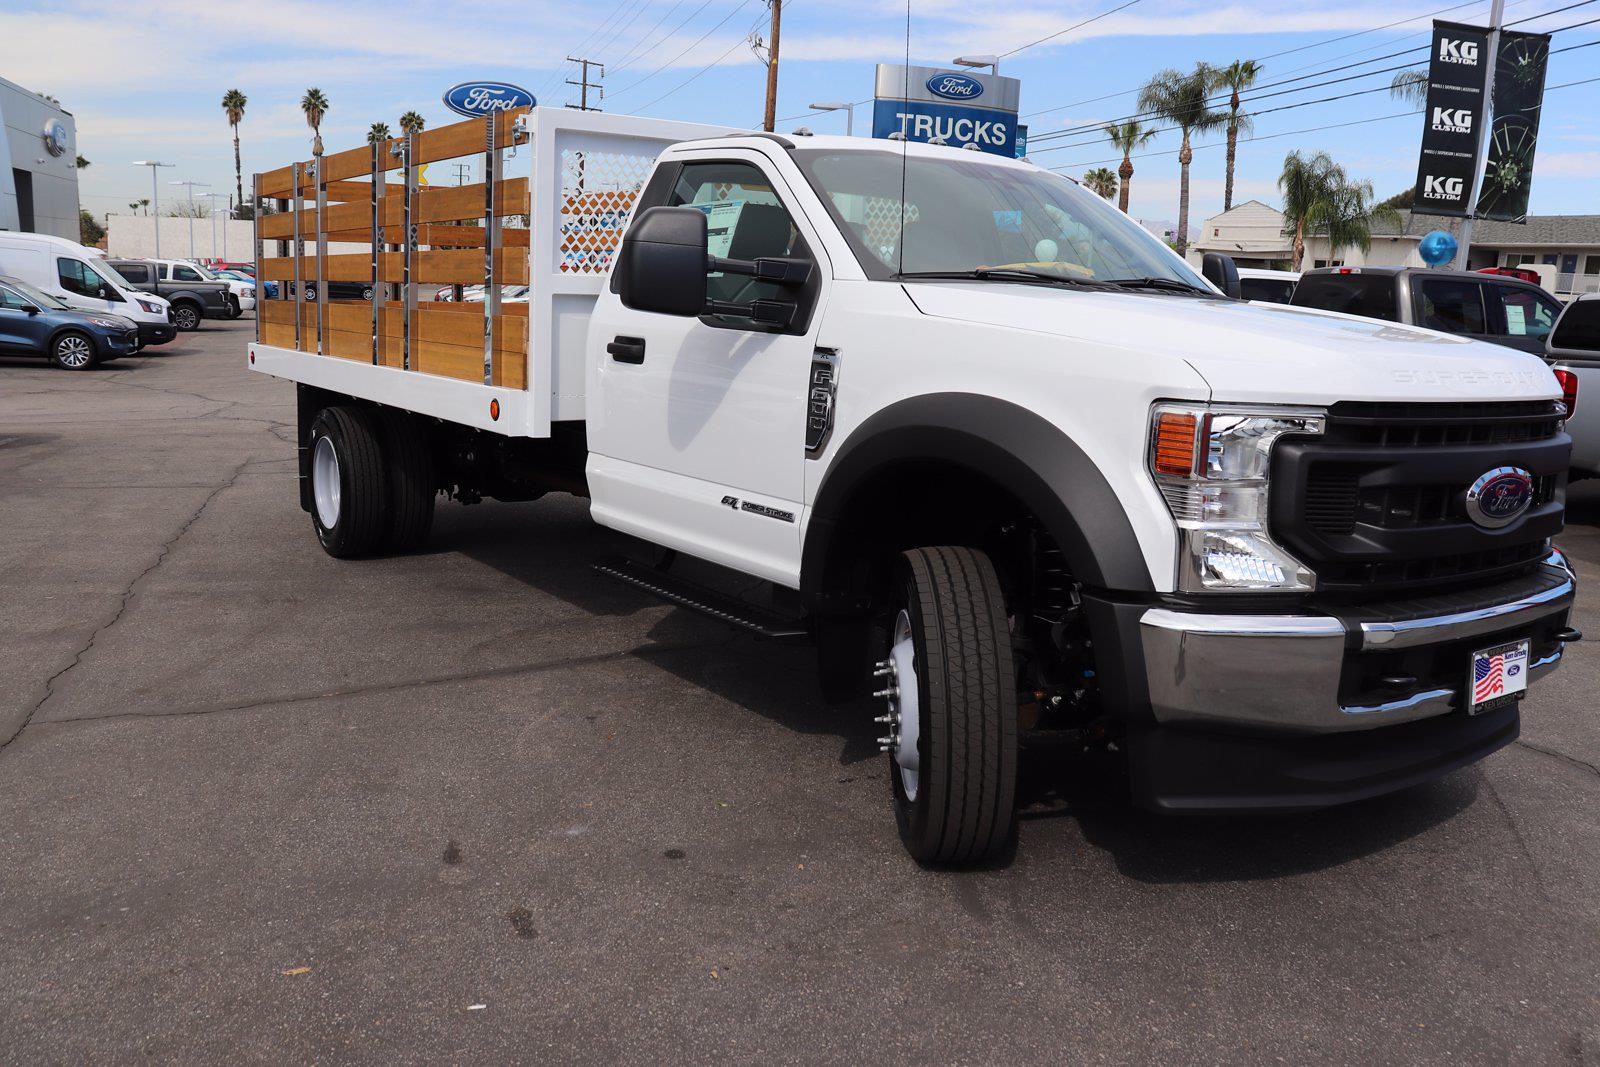 2021 Ford F-600 Regular Cab DRW 4x2, Royal Truck Body Stake Bed #212370 - photo 1